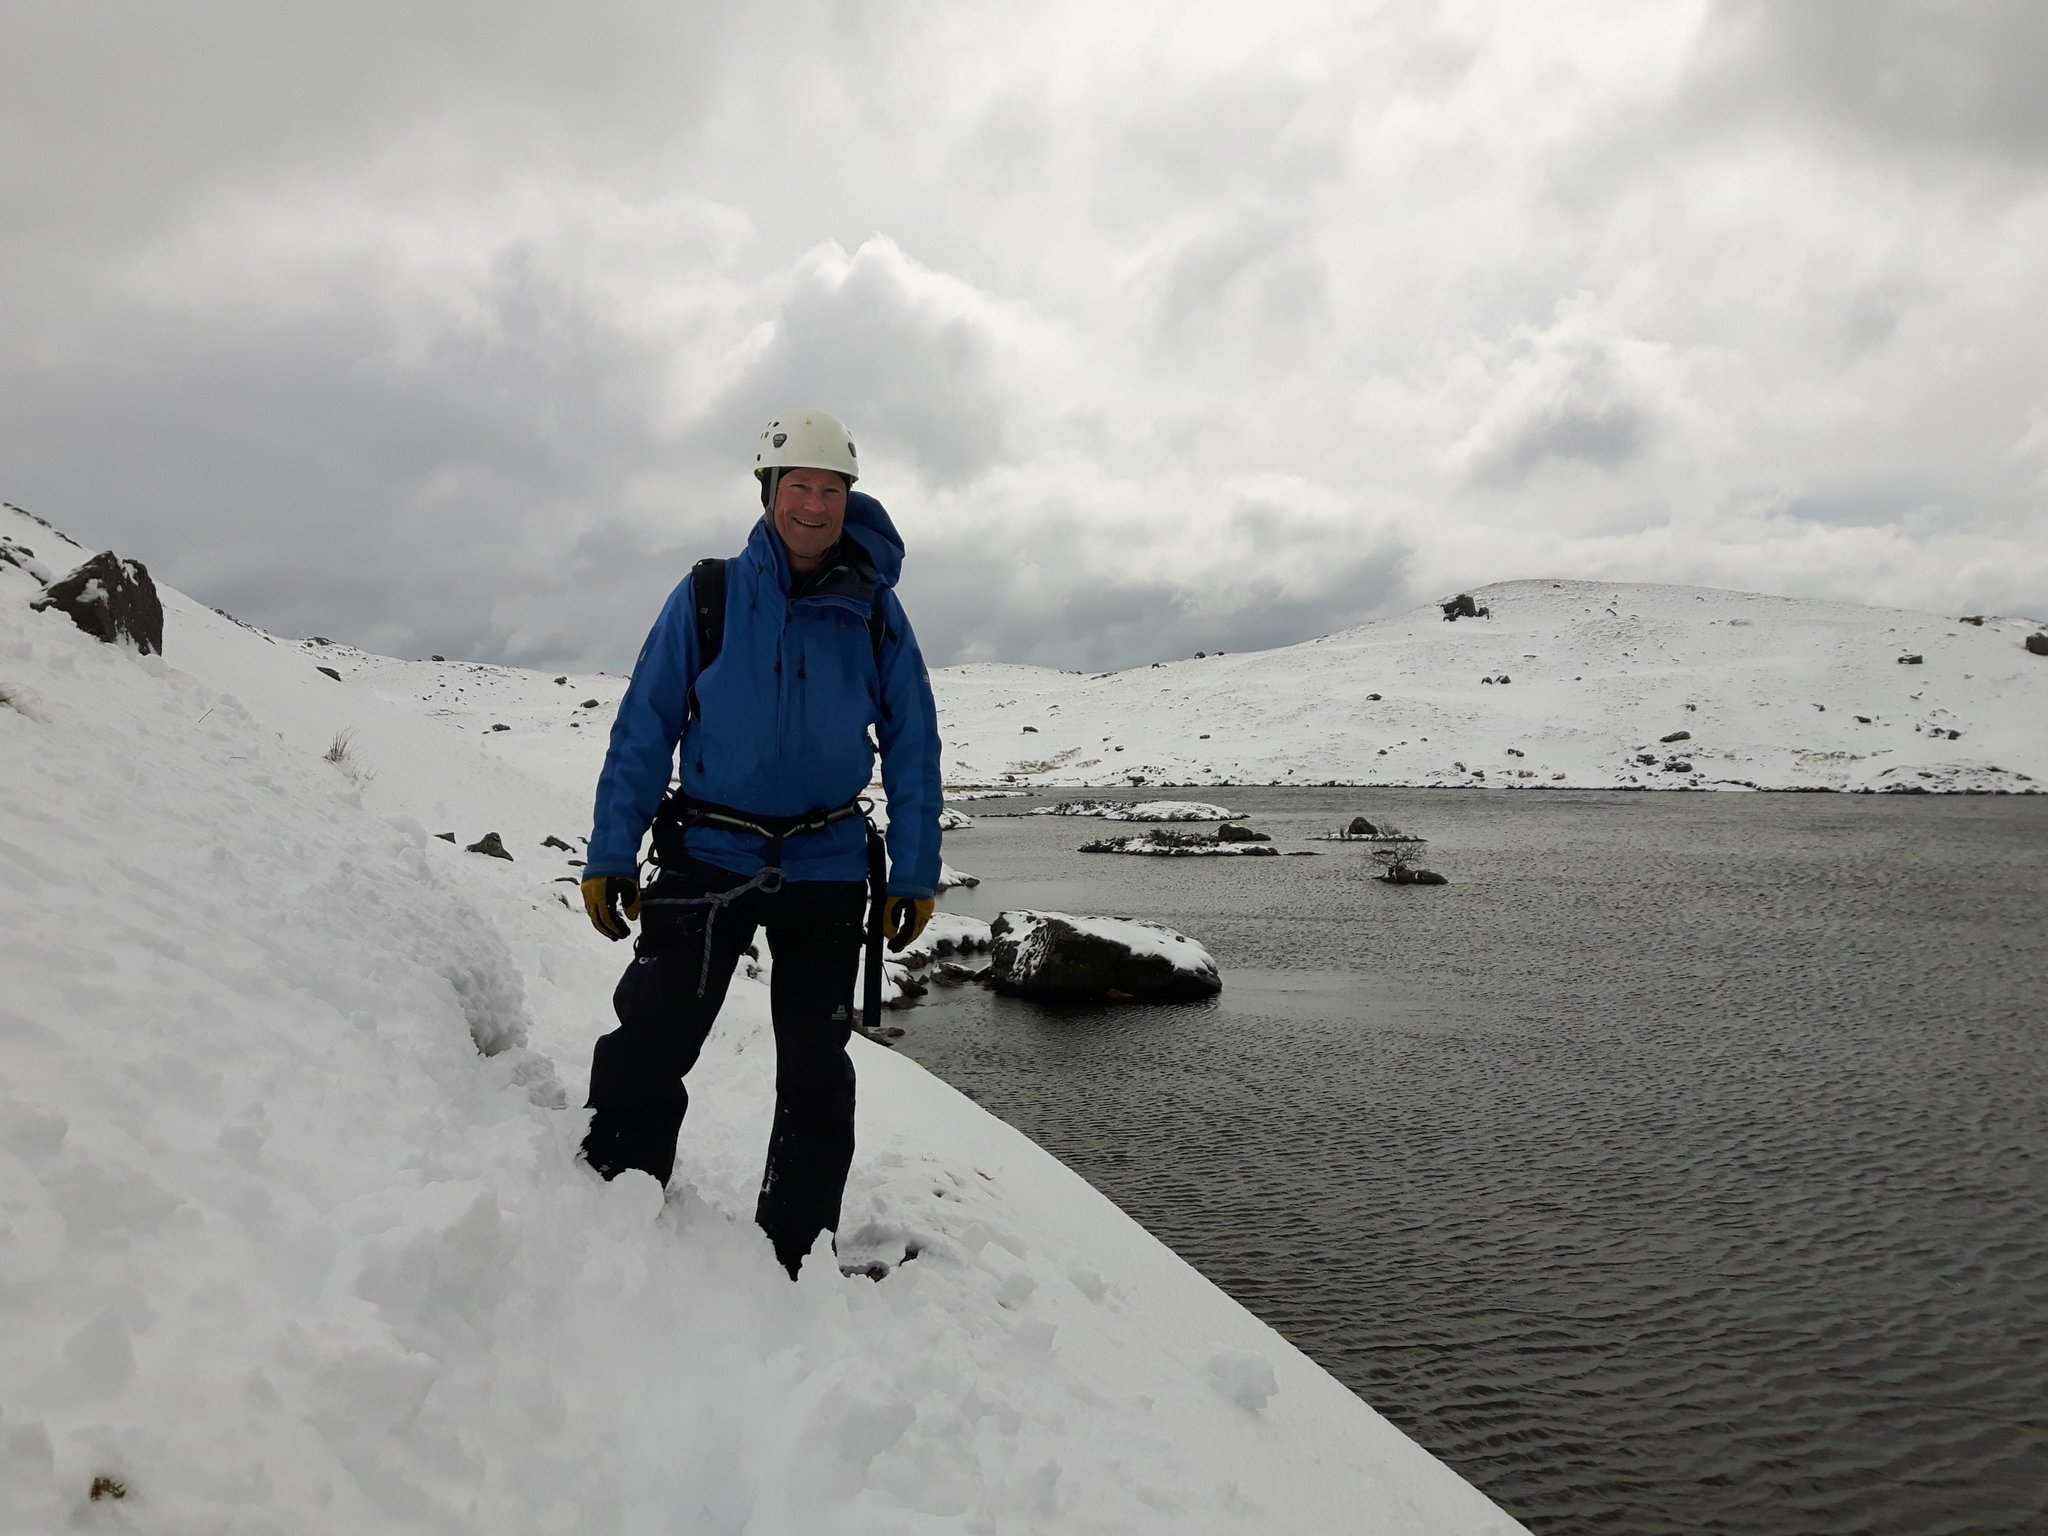 April: back to winter at Stickle tarn in the Lake District